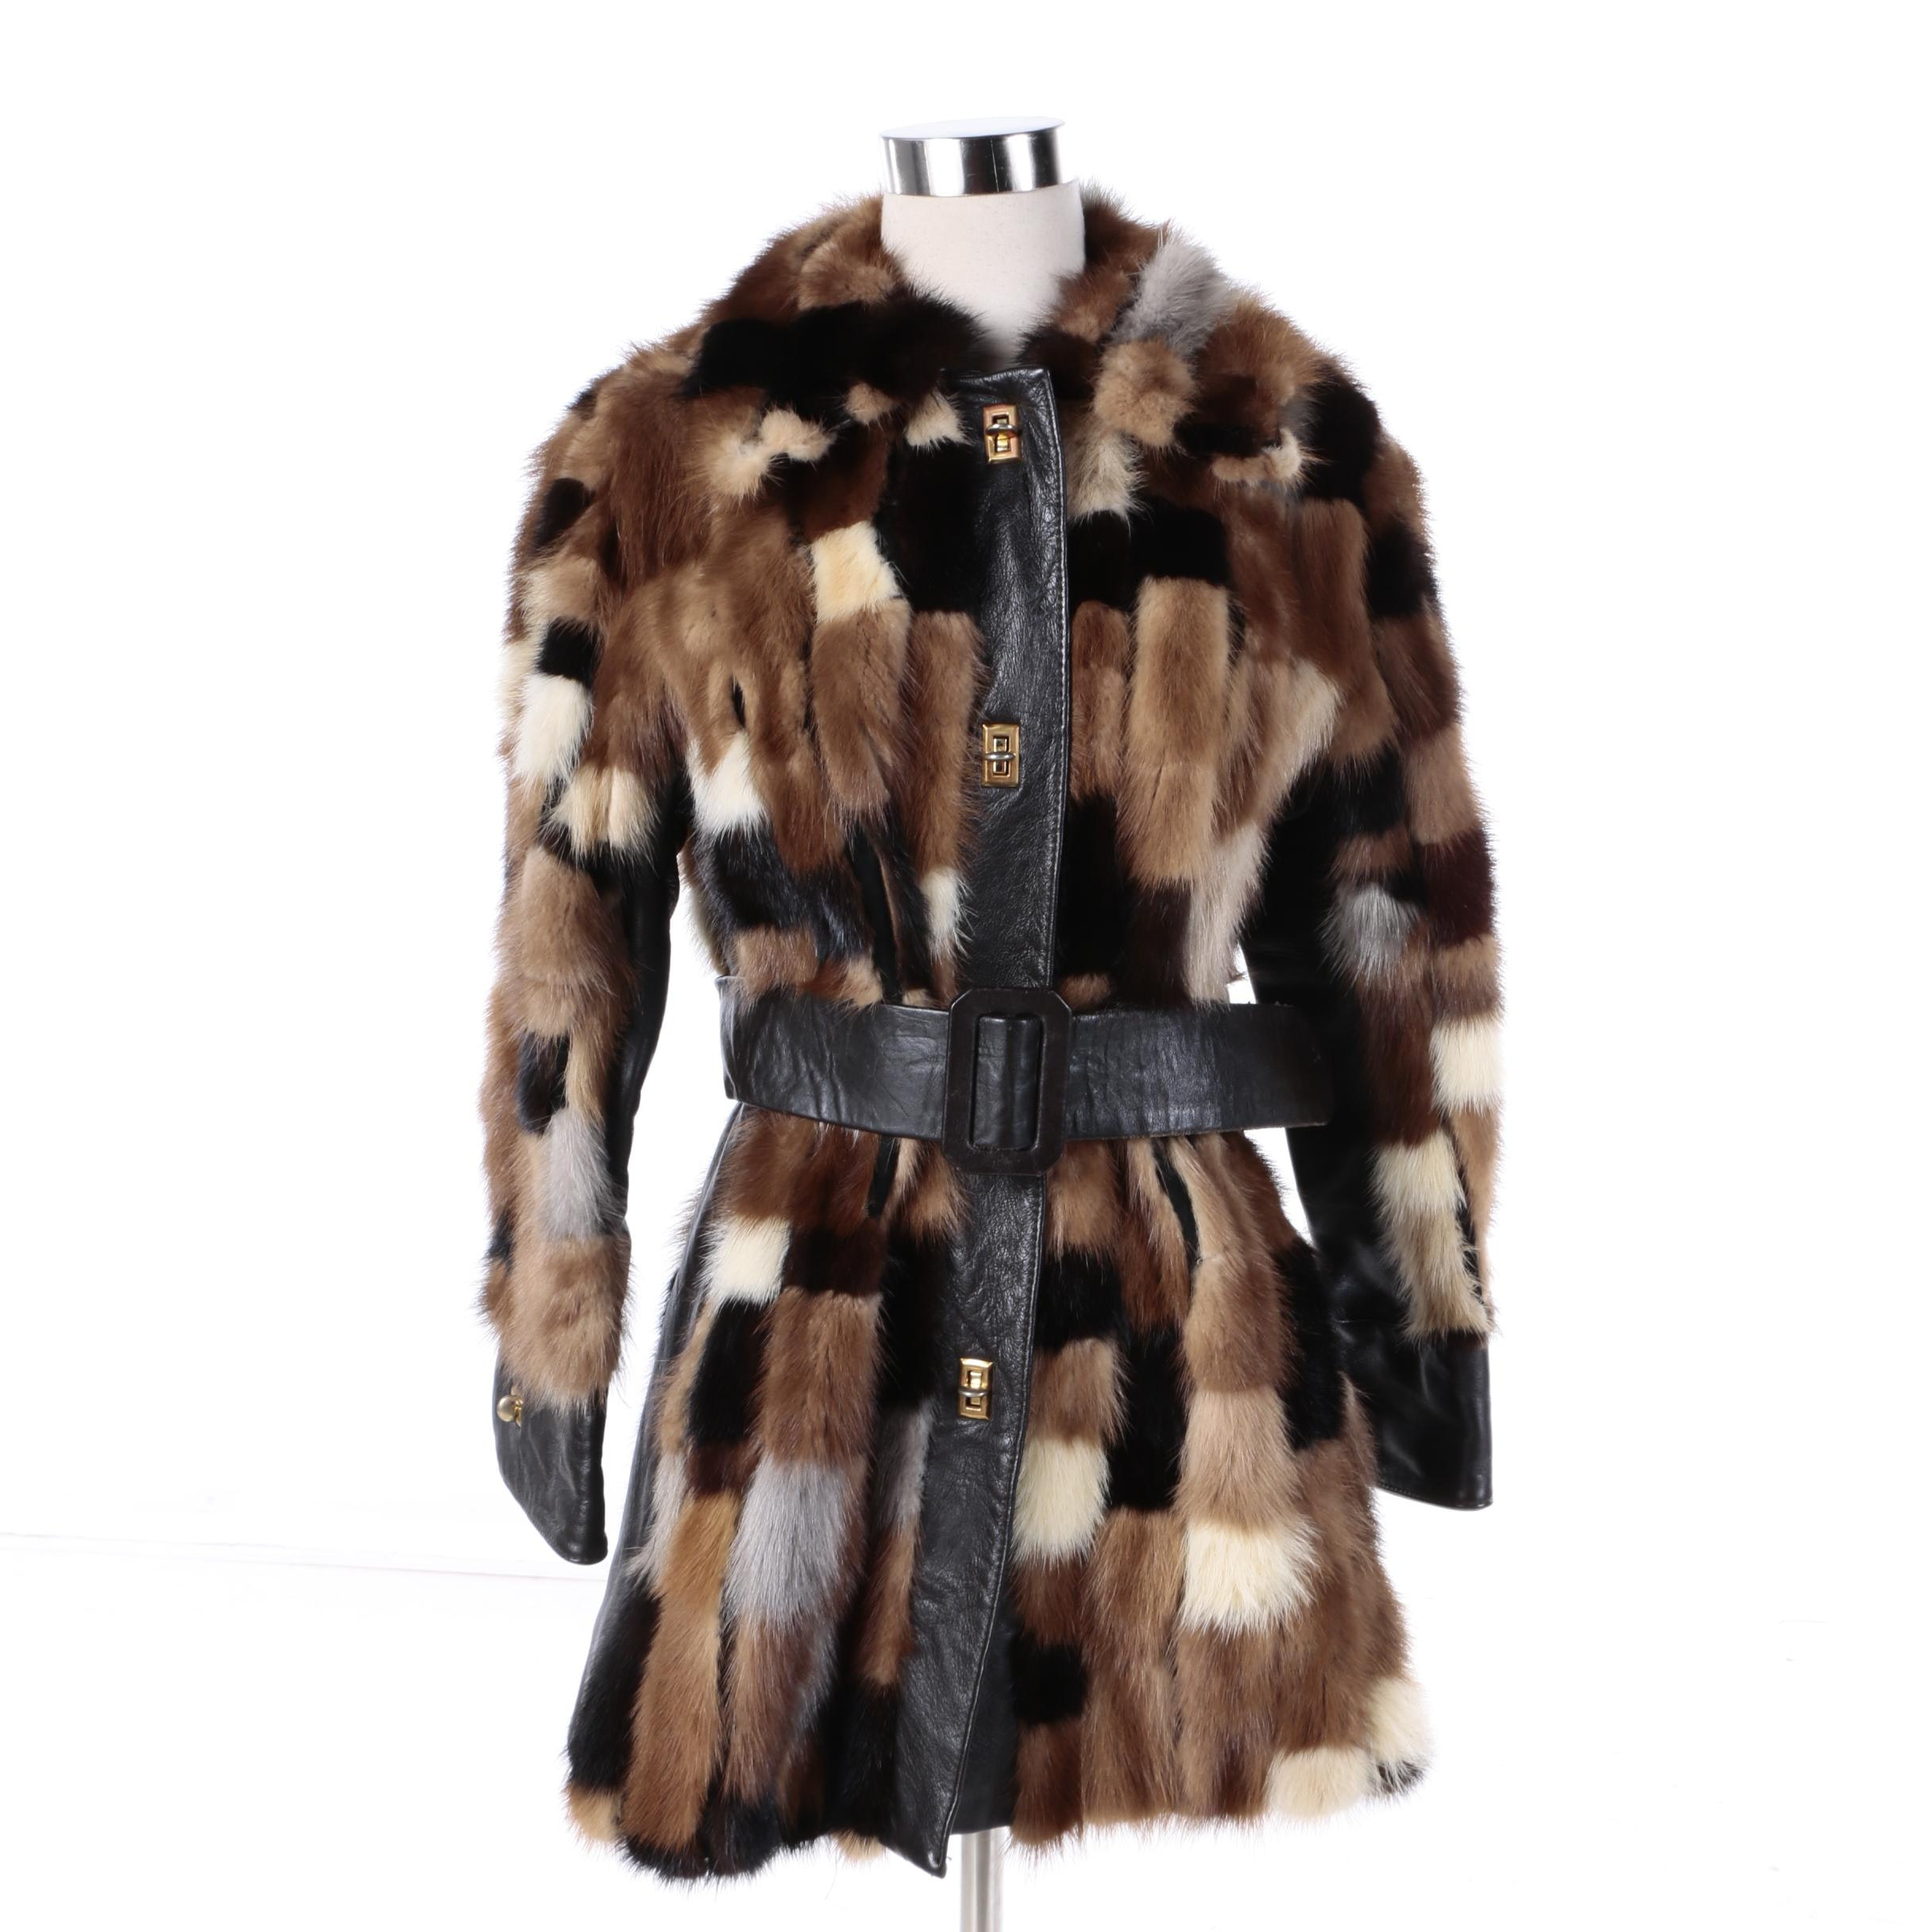 Women's Vintage Patchwork Mink Fur and Leather Coat